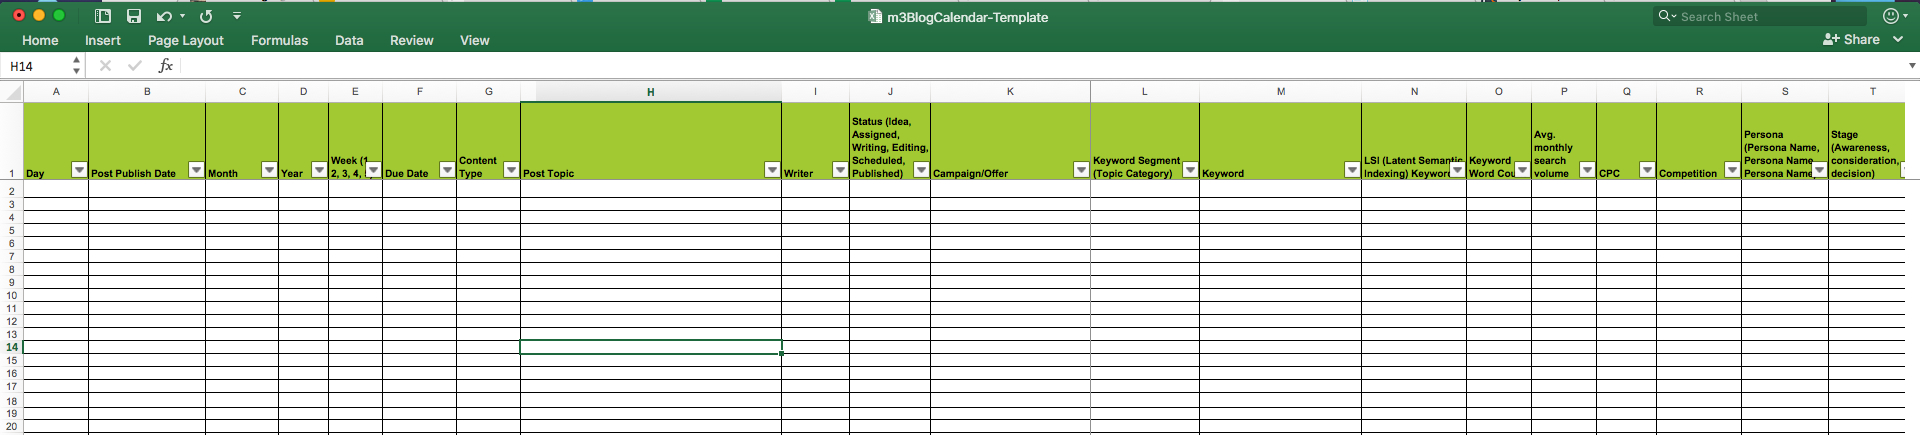 Editorial Calendar Templates For Content Marketing: The Ultimate List With Excel Spreadsheets Templates